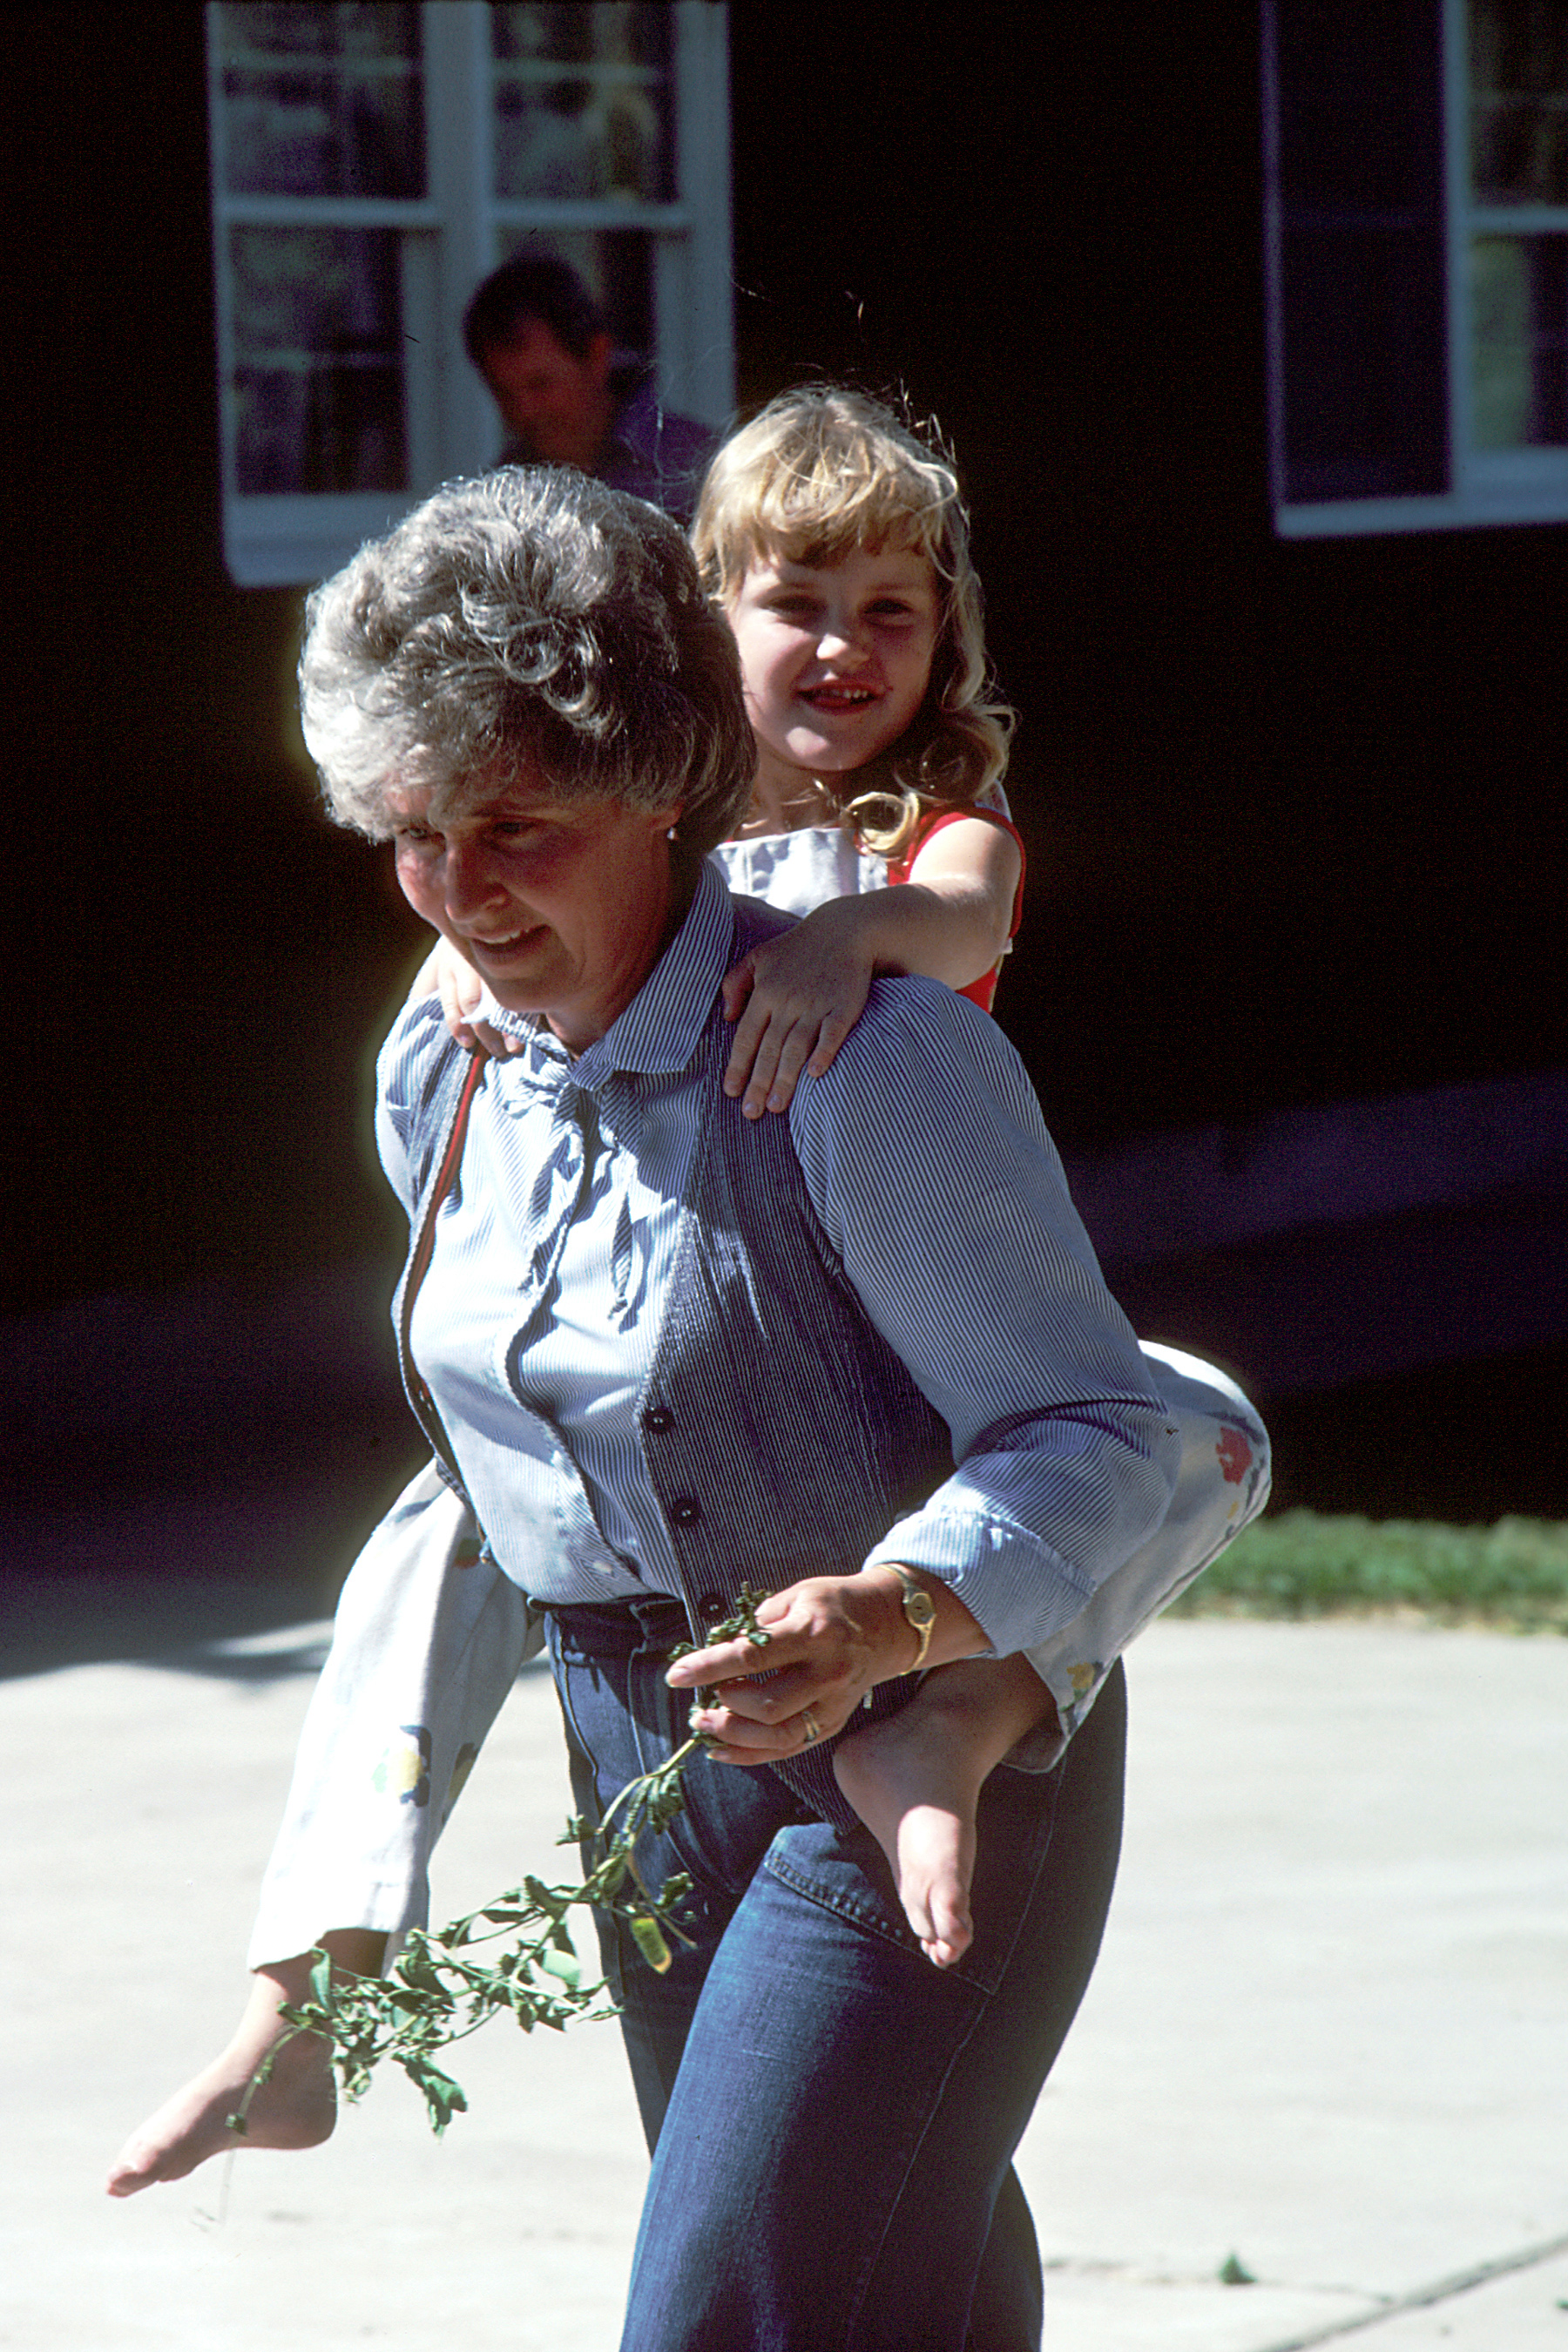 A grandmother carries her granddaughter on her back while holding herbs.